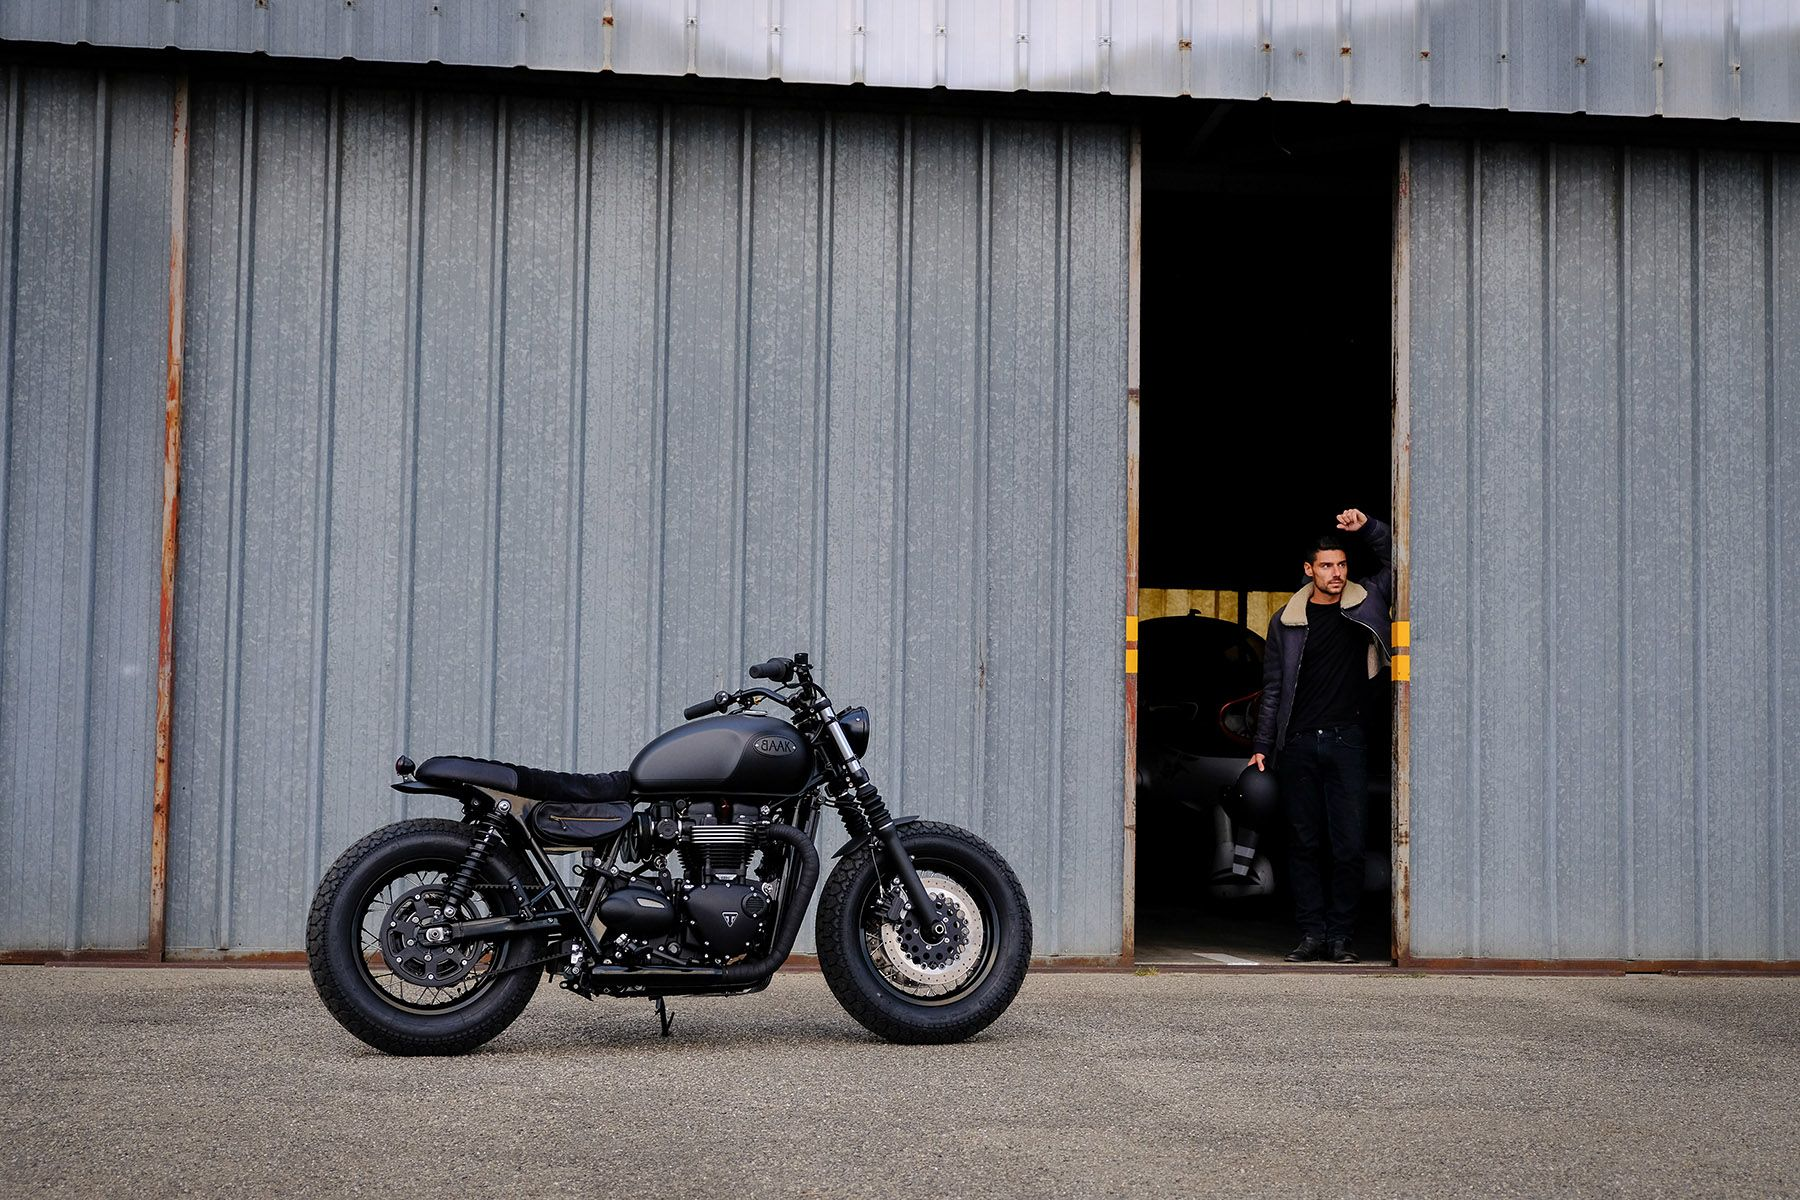 Getting Prepared For A Ride With Baaks Triumph Bonneville T120